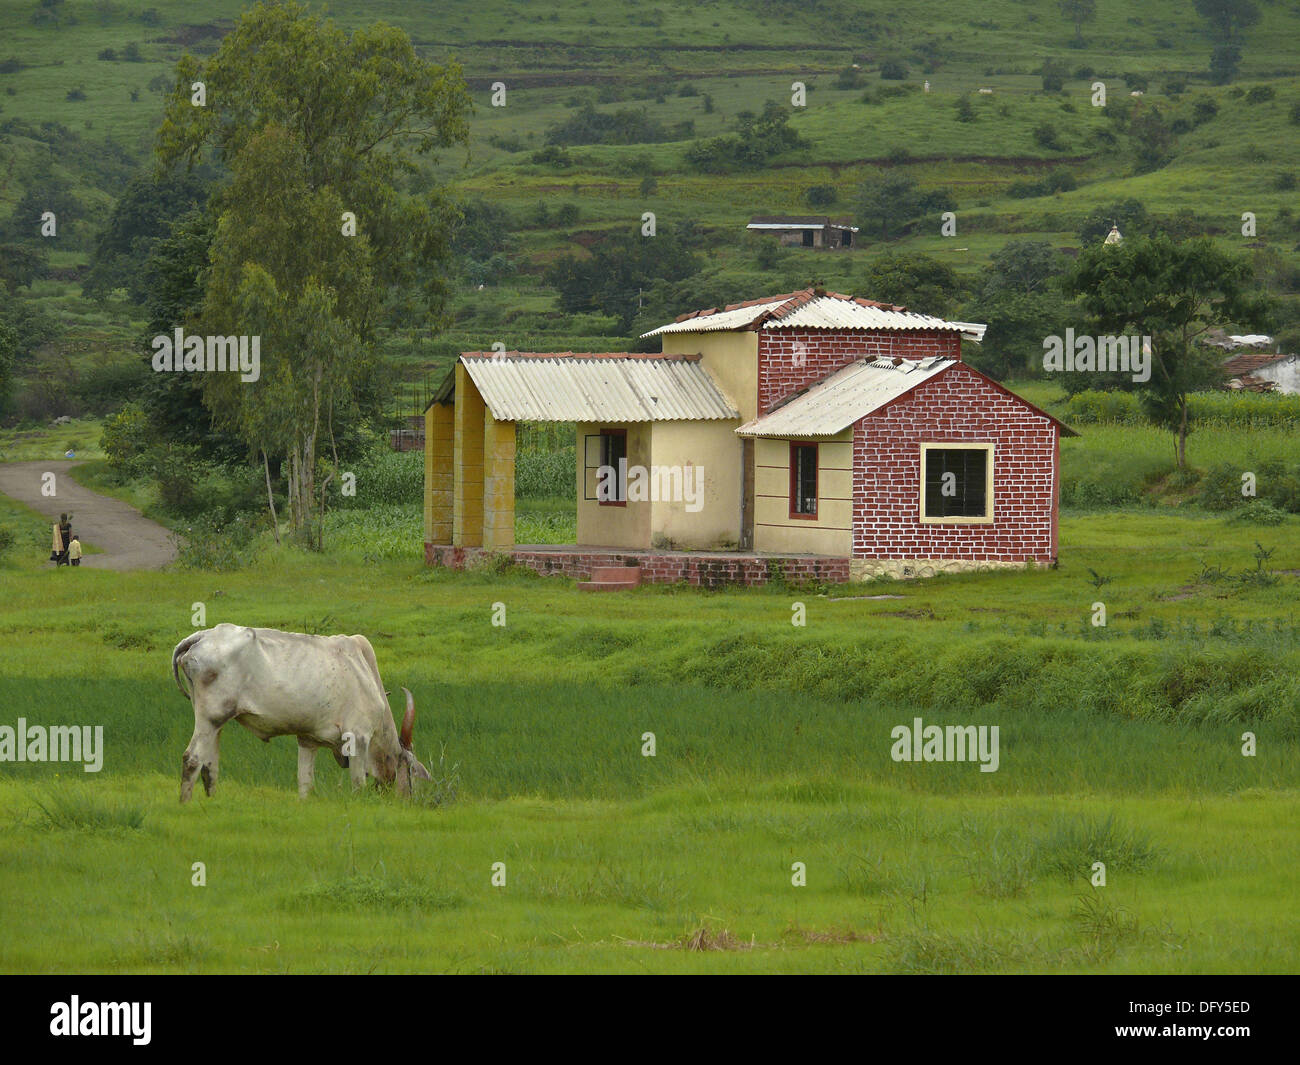 A cow is eating grass in front of a small farm house for Pictures of small farm houses